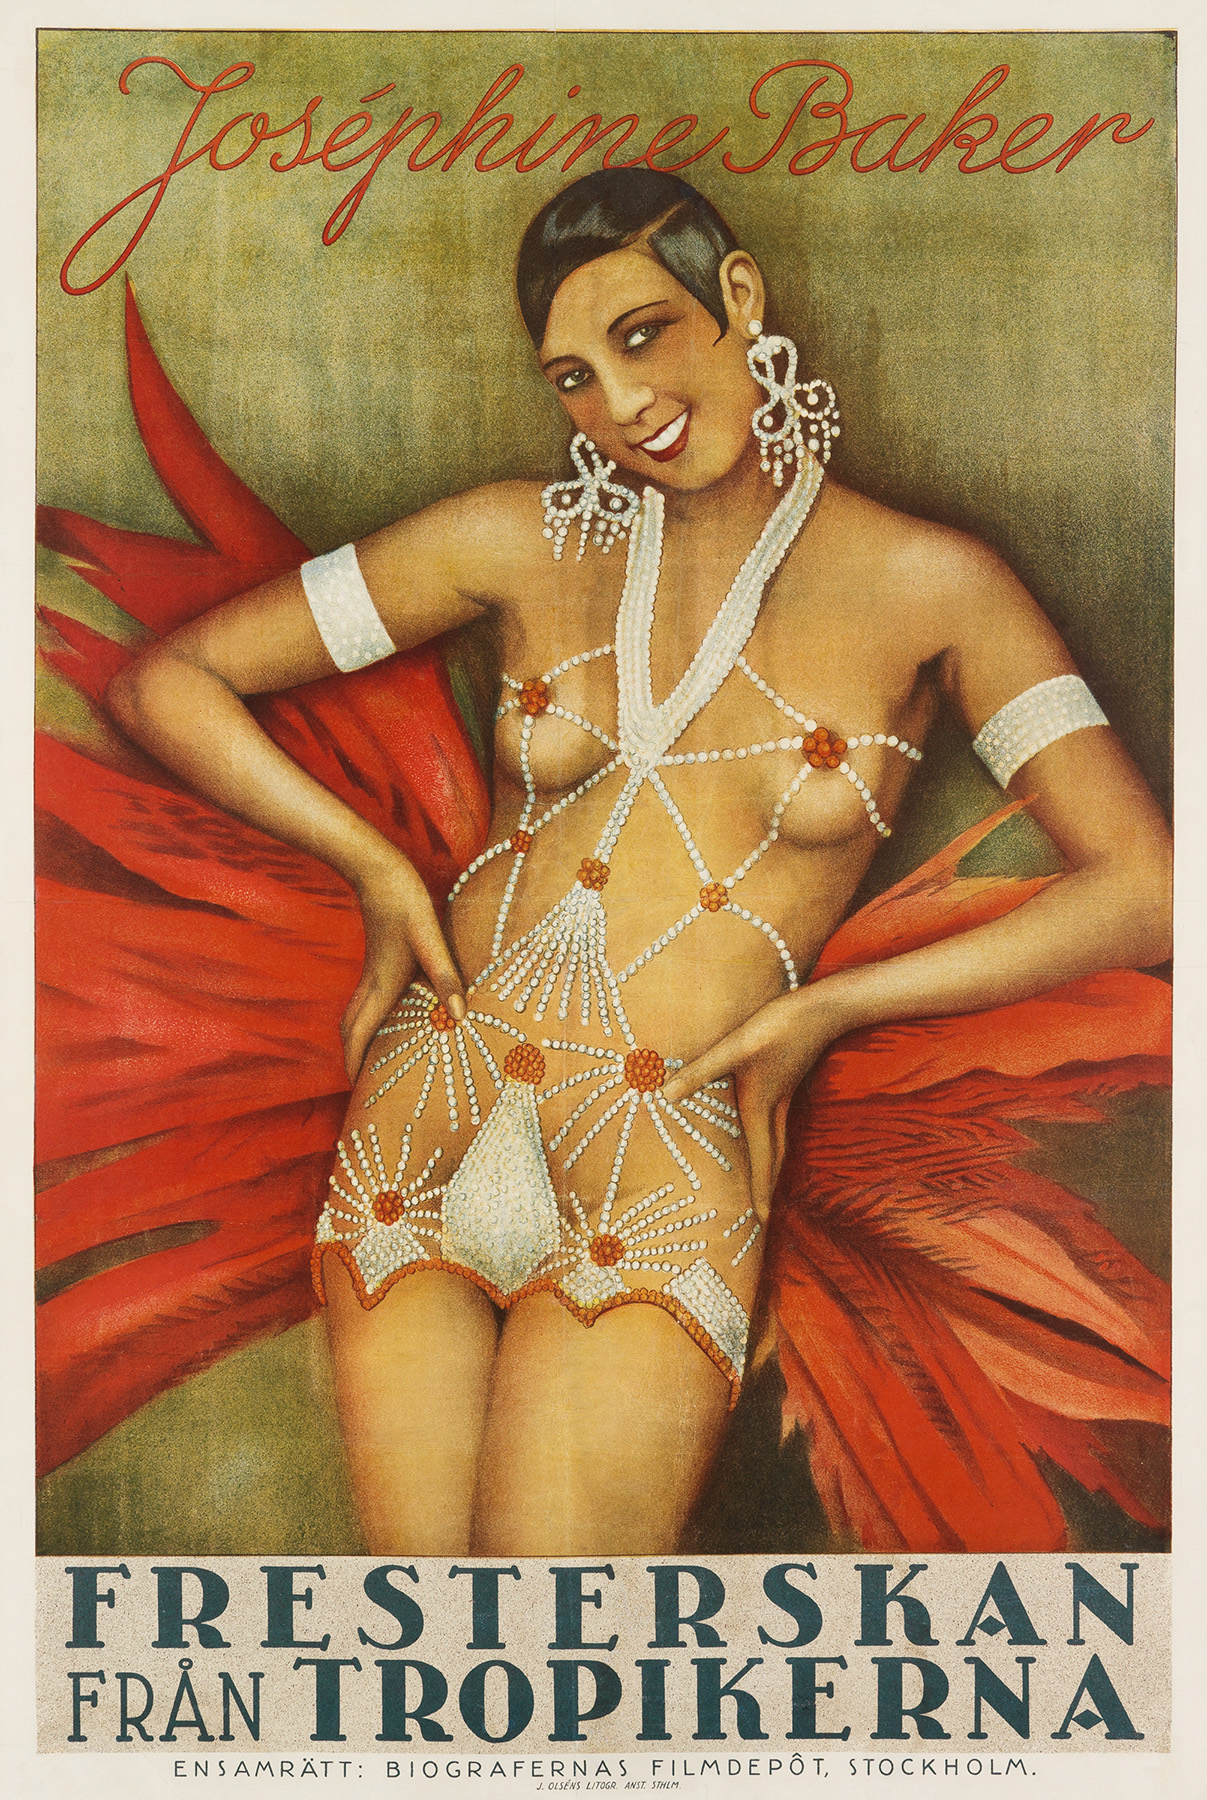 A 1927 Swedish movie poster for Josephine Baker's silent film The Siren of the Tropics. It depicts her smiling directly at the viewer, wearing a scanty costume of strategically placed strings of pearls. She also wears pearl arm cuffs, elaborate pearl earrings. A large fan of red feathers, evidently attached to her back, spreads behind her.